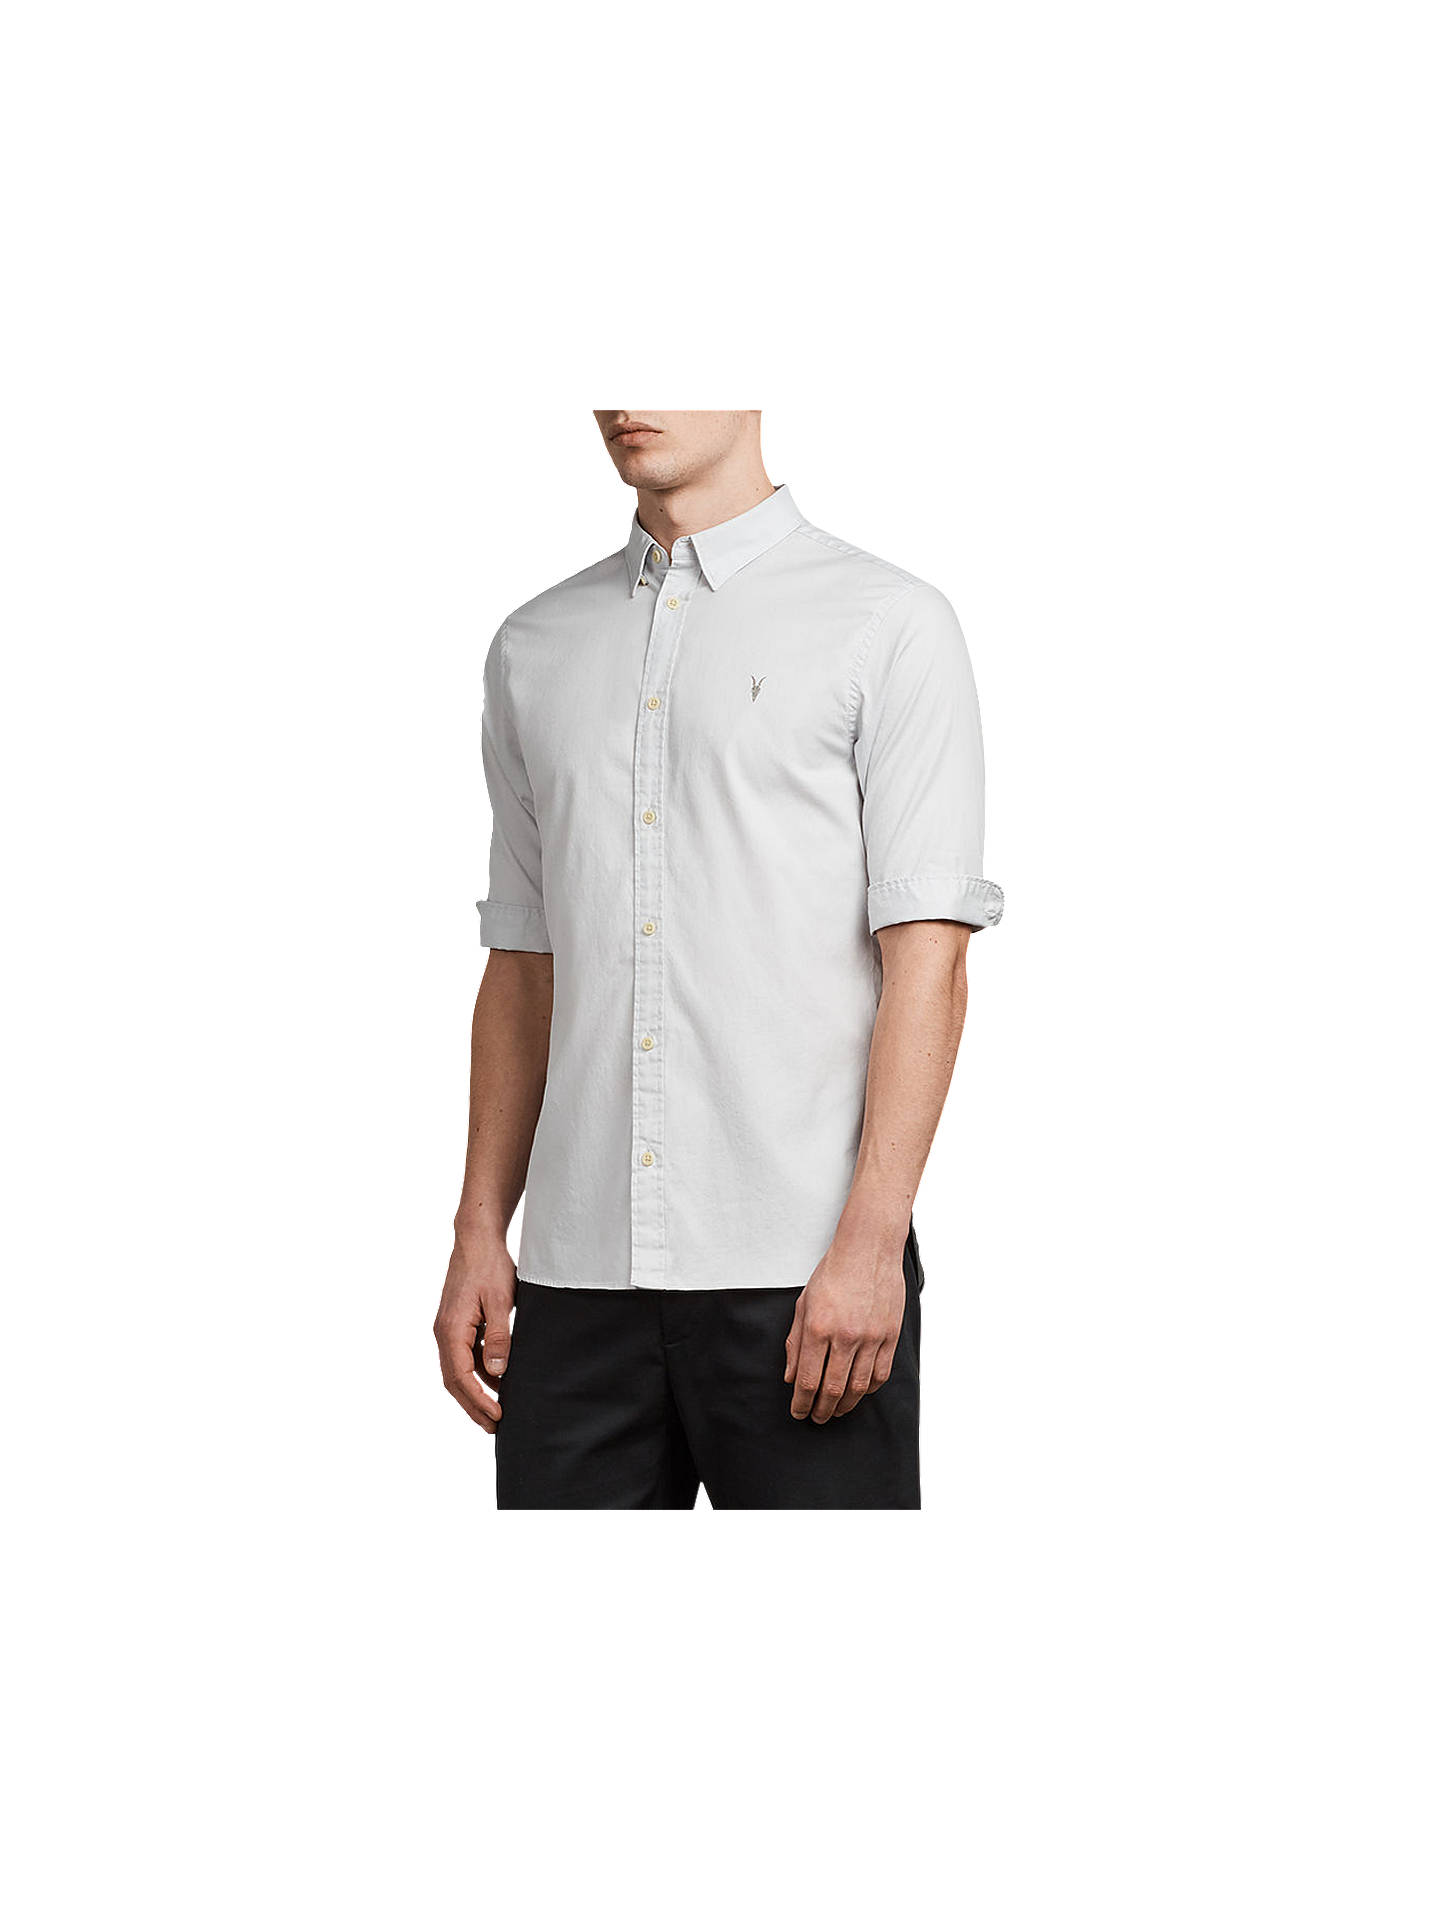 BuyAllSaints Redondo Half Sleeve Shirt, Celest Blue, XS Online at johnlewis.com